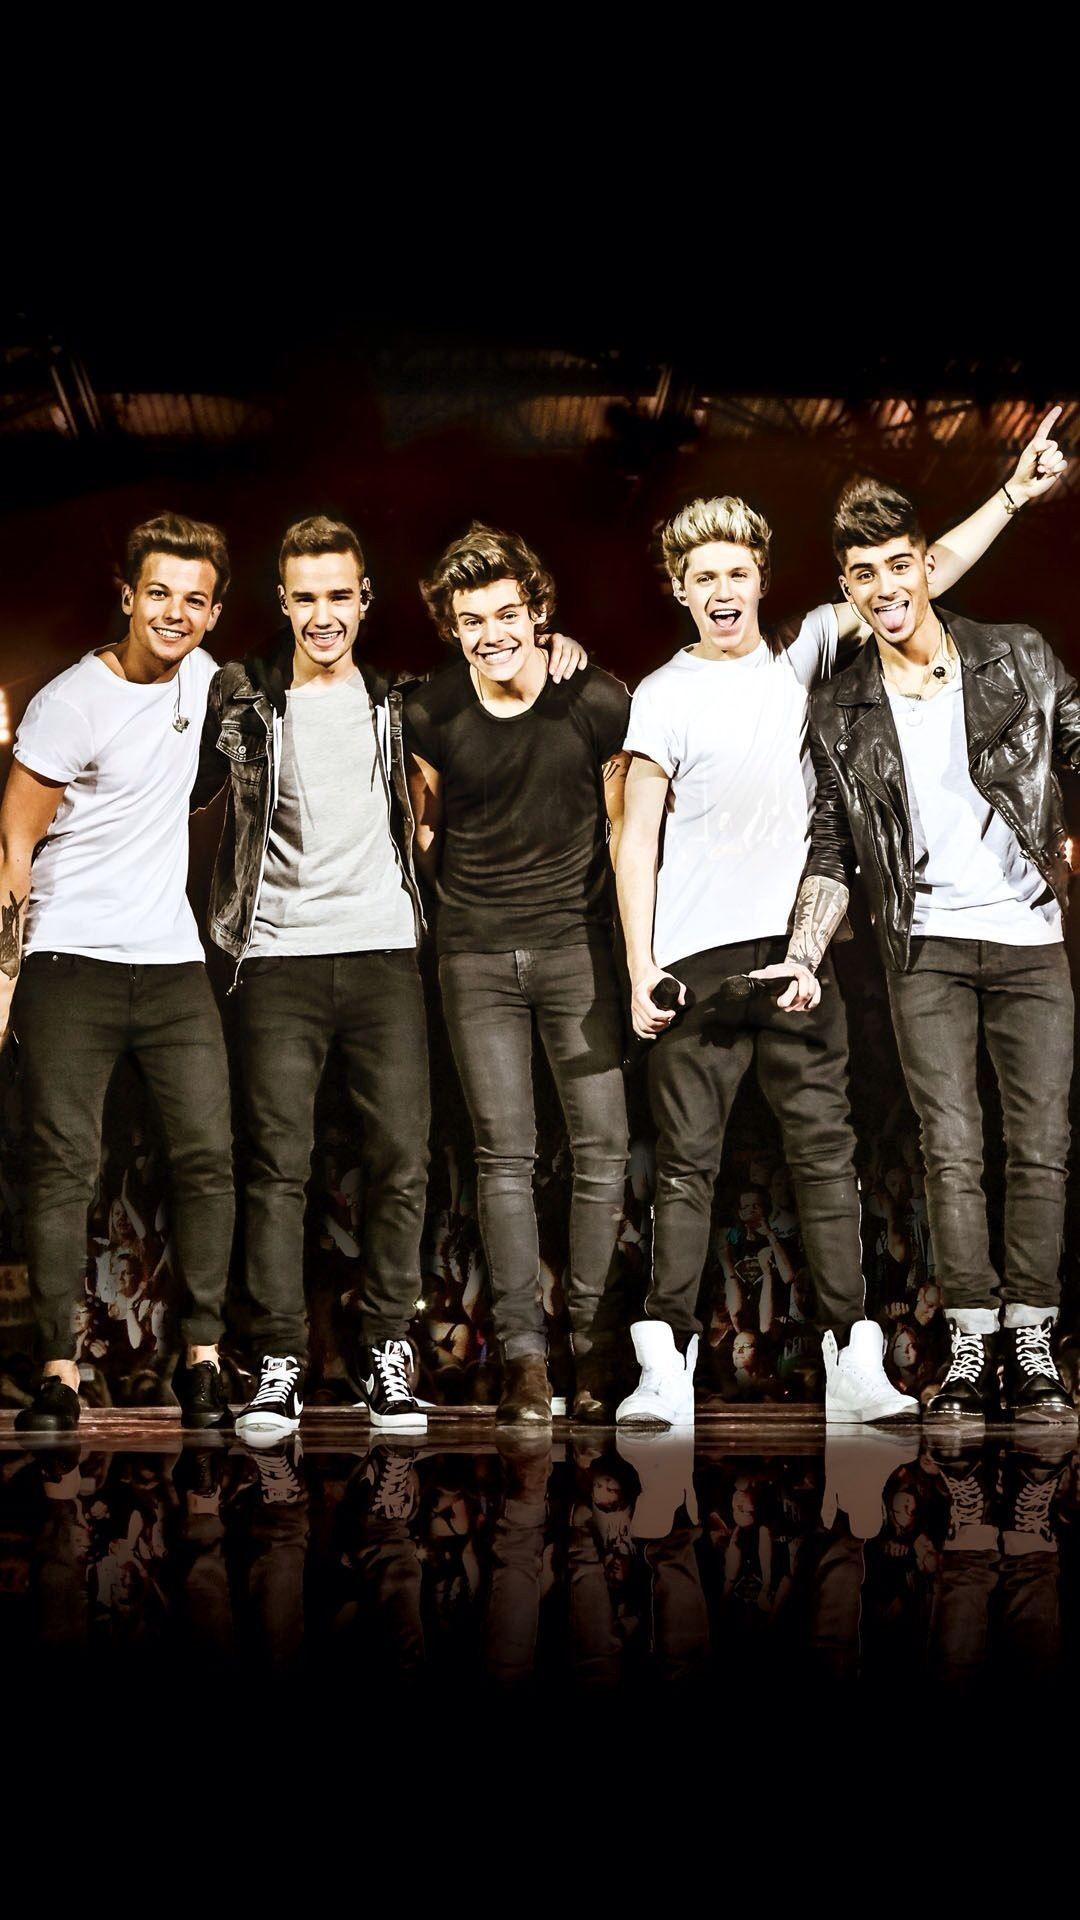 Best Of One Direction Wallpaper Iphone Onedirection2014 Onedirection2014 Best Of One Direc In 2020 One Direction Tickets One Direction Photos One Direction Wallpaper